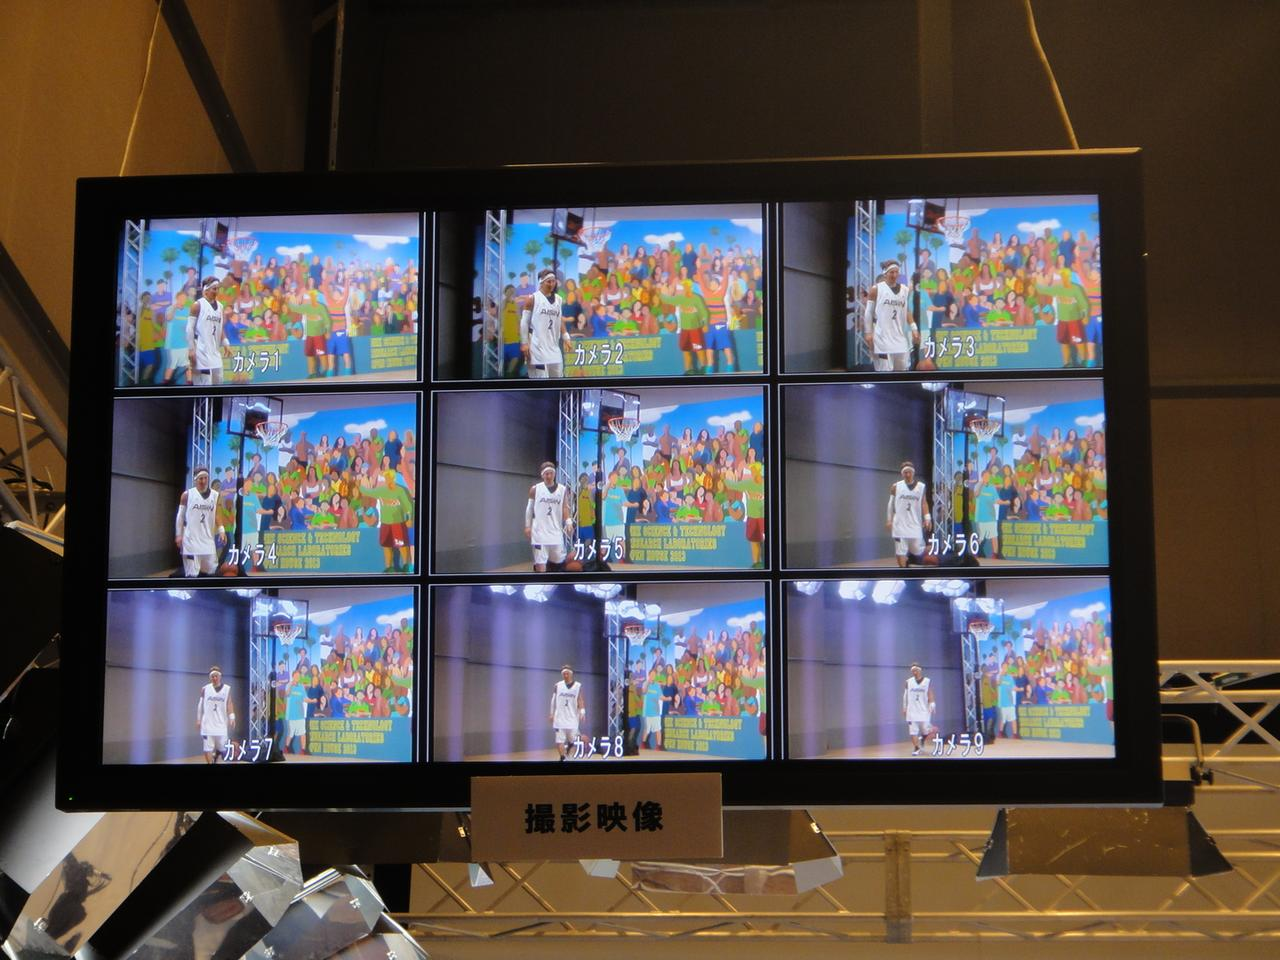 Video feeds from the new system's nine cameras